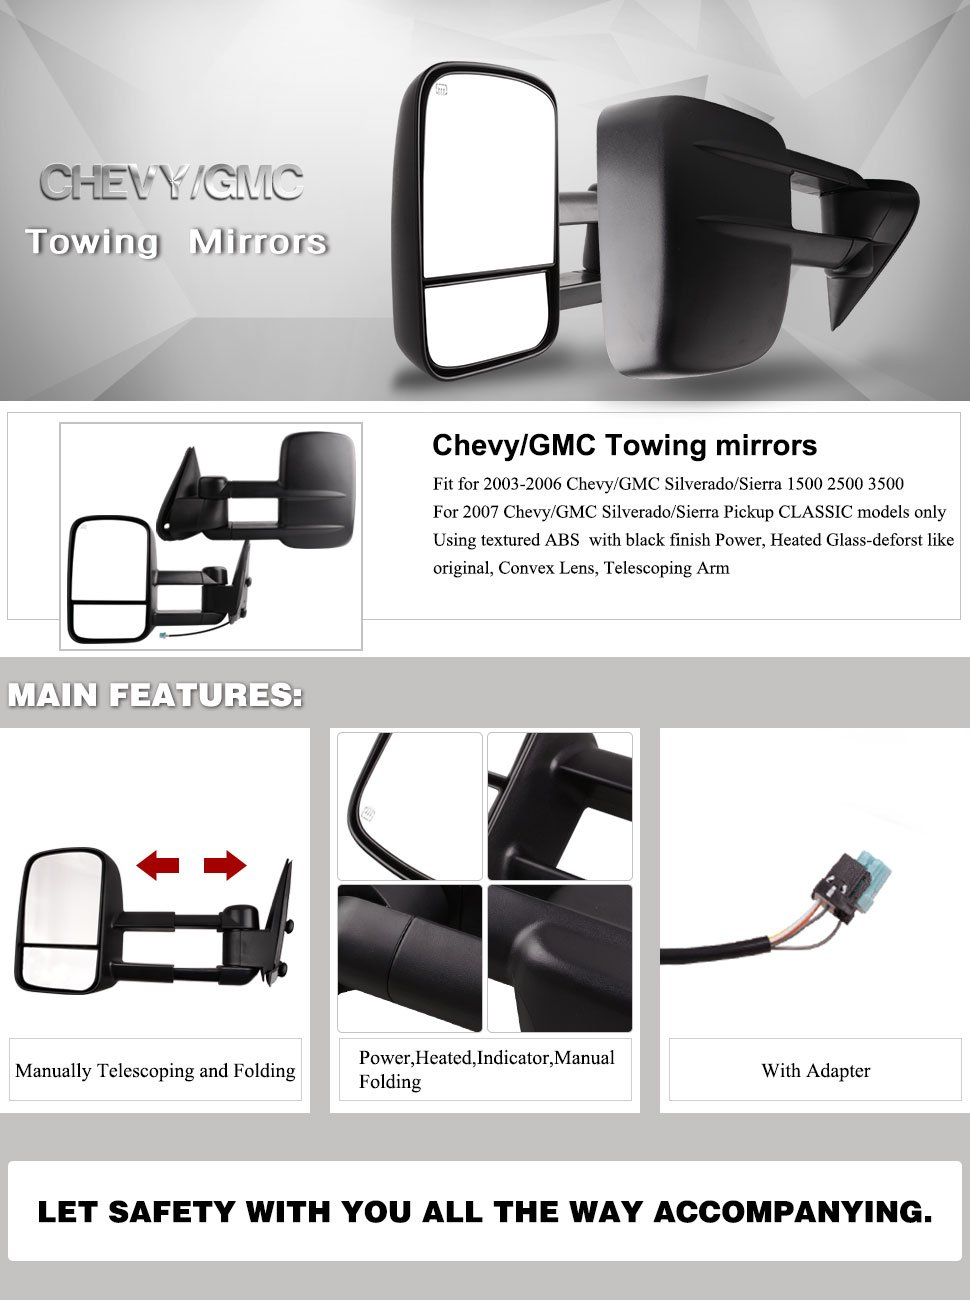 Towing Mirrors Yintatech Pickup Power Heated Pair Set Tow Gm Trailer Connector Wiring For 2003 2007 Chevy Silverado Gmc Sierra Truck